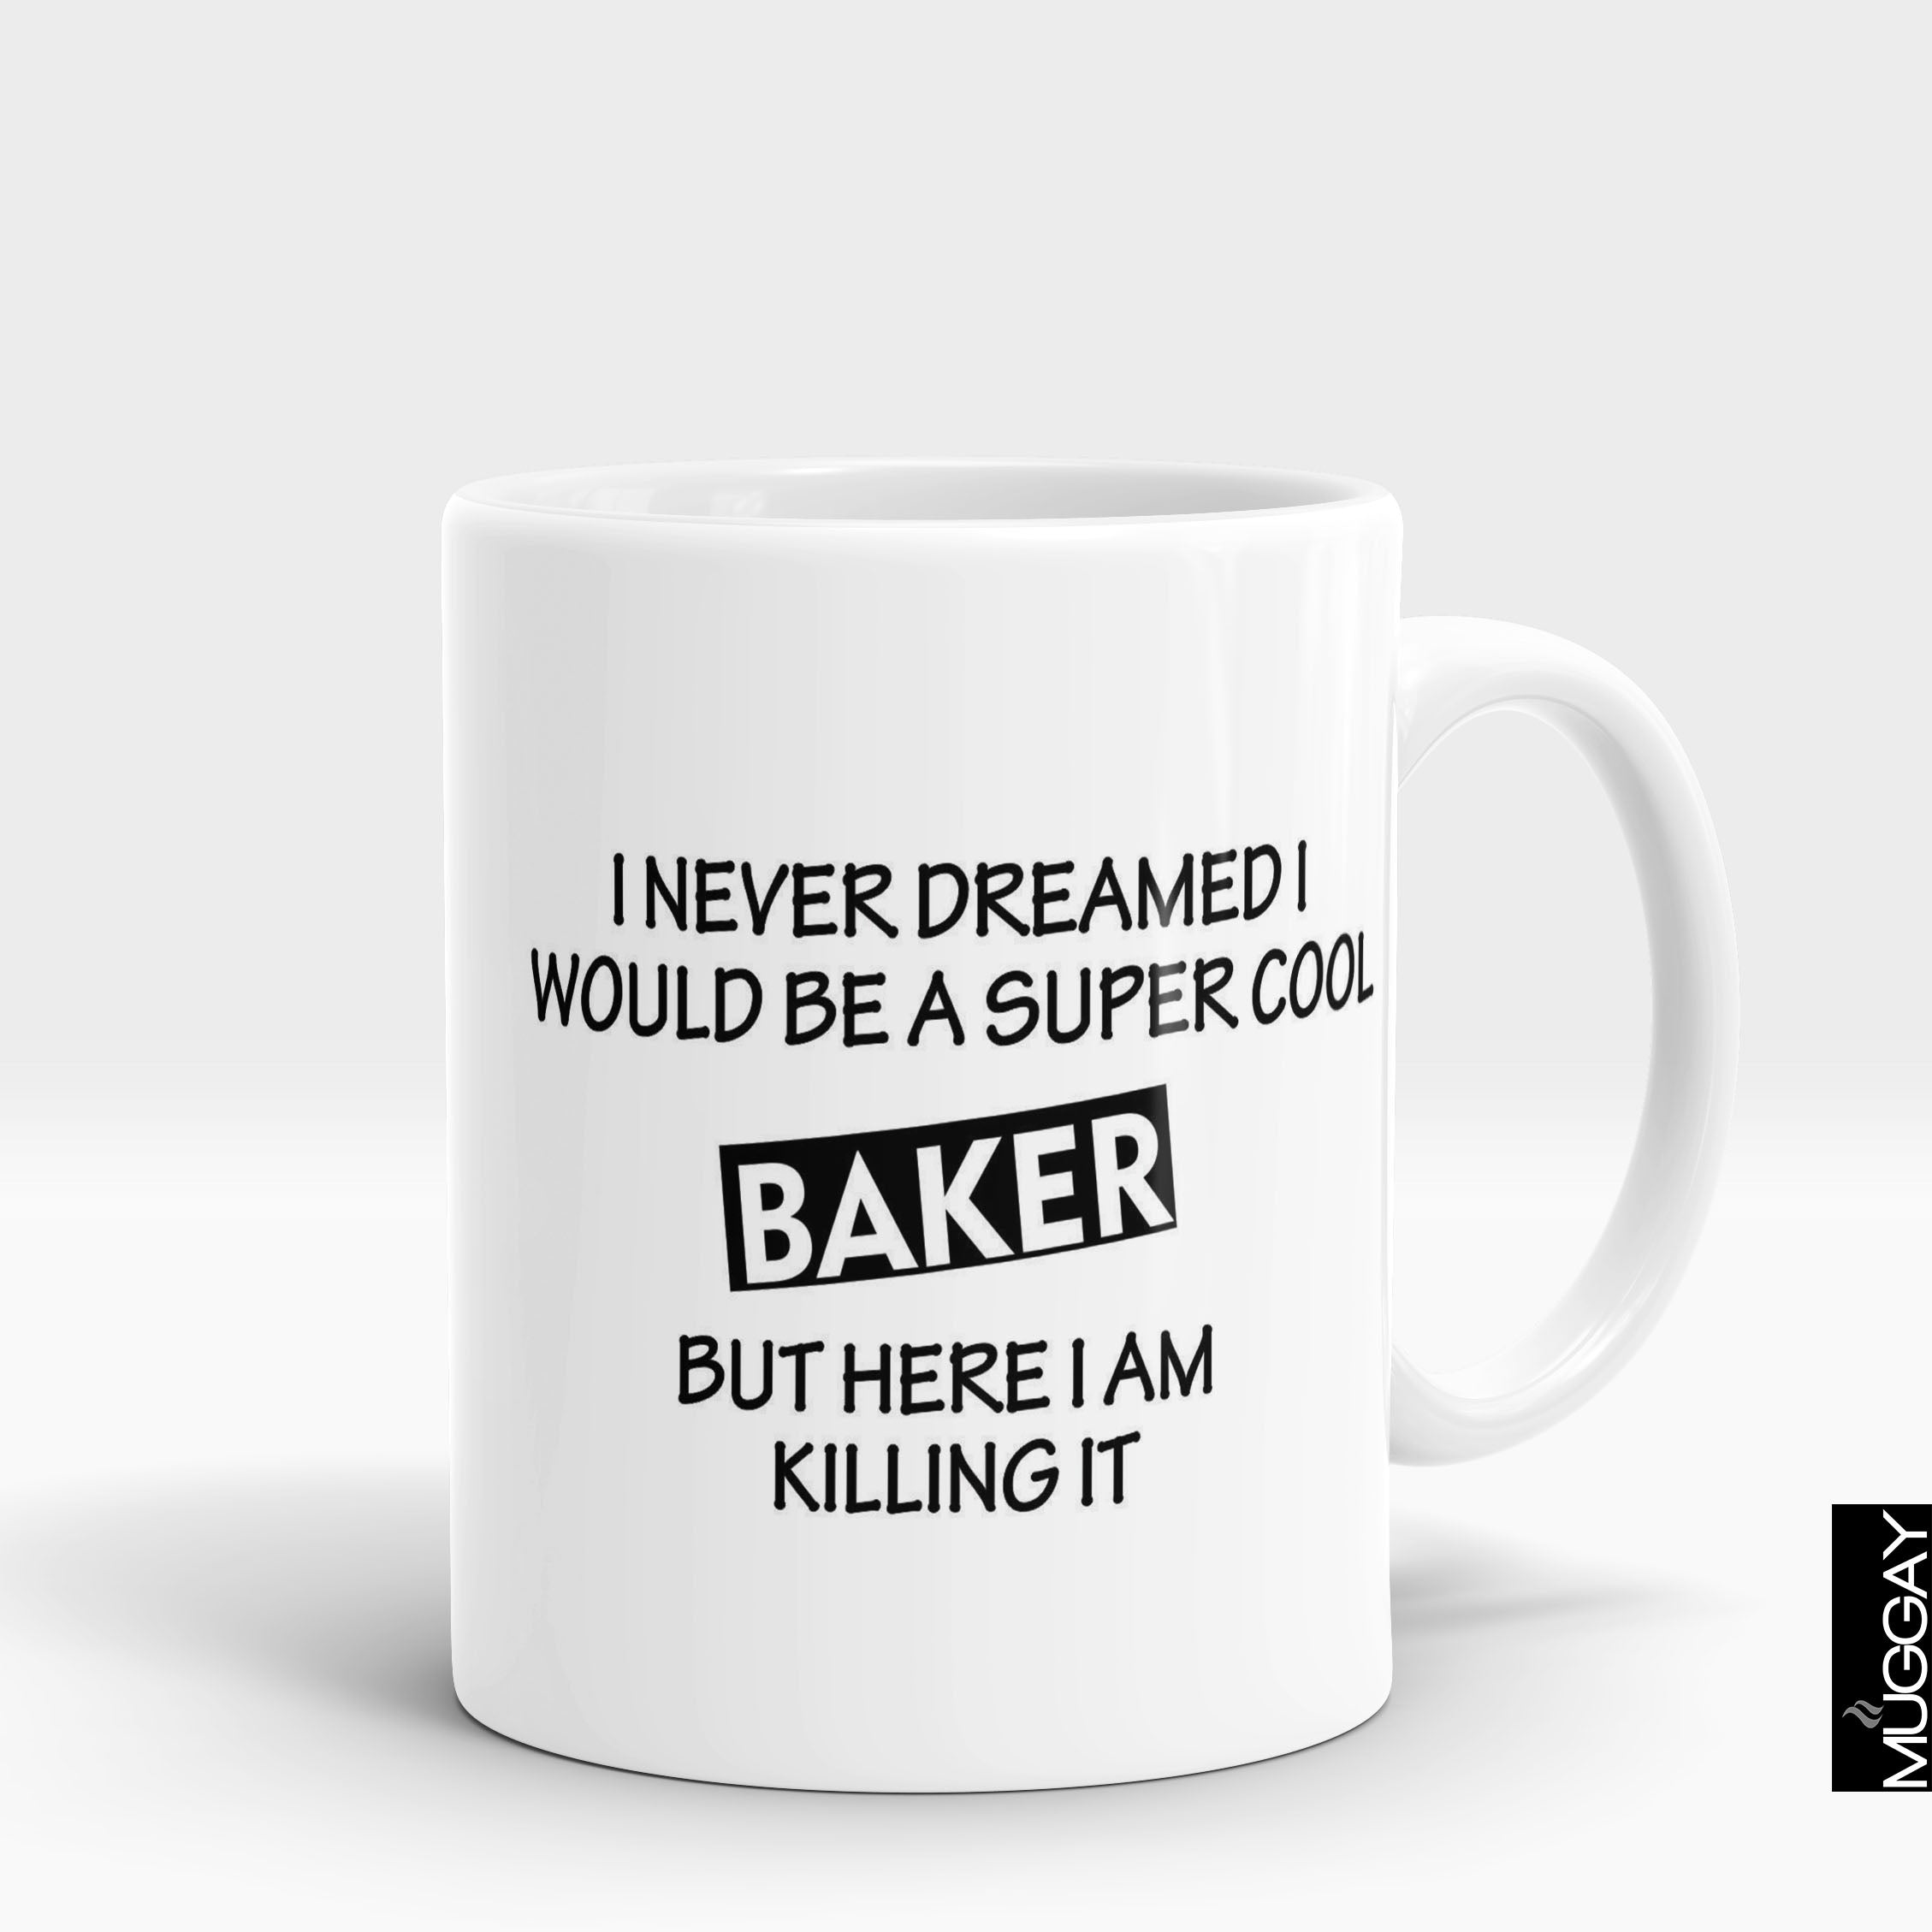 Baking Mug - bkr10 - Muggay.com - Mugs - Printing shop - truck Art mugs - Mug printing - Customized printing - Digital printing - Muggay